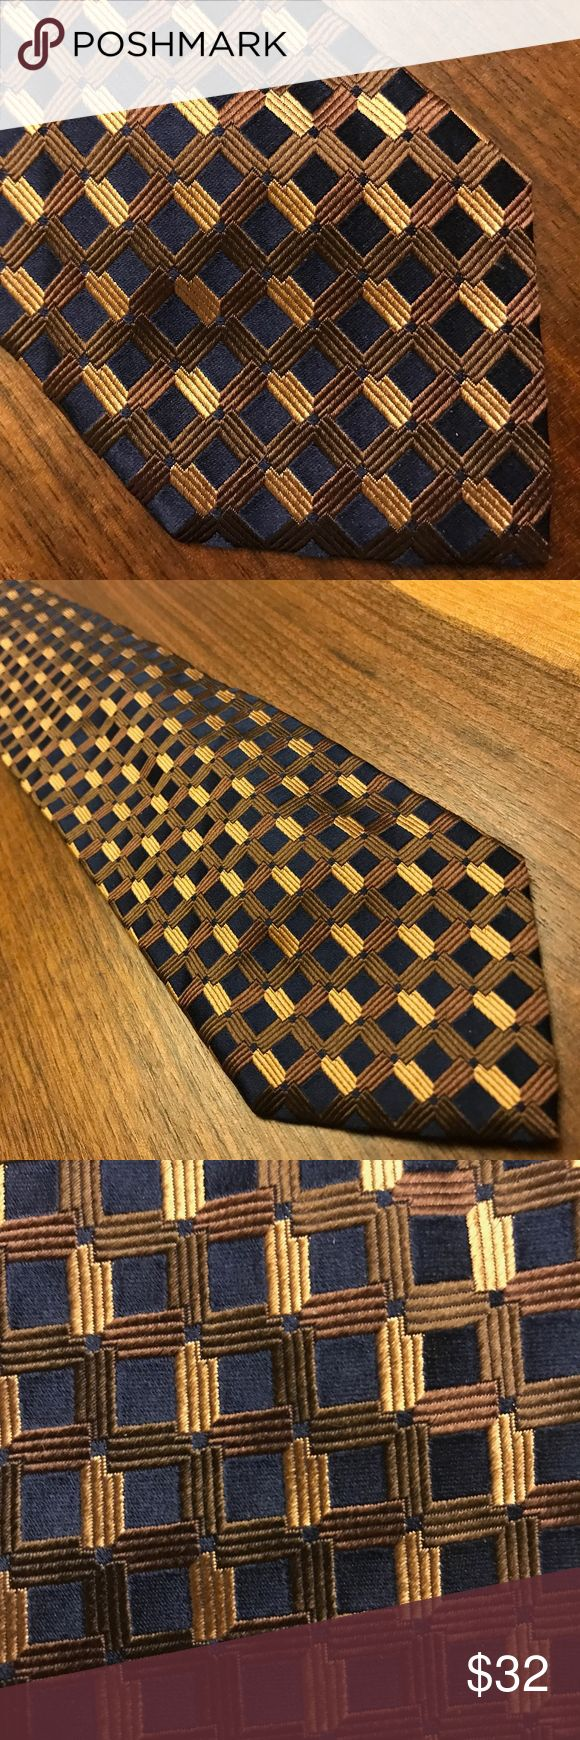 Hugo Boss Geometric Square Tie 🇮🇹 Hugo Boss AG, often styled as BOSS, is a German luxury fashion house. It was founded in 1924 by Hugo Boss and is headquartered in Metzingen, Germany. This tie features a geometric square pattern and is made in Italy. Excellent condition - no tears, rips or stains.  Tie at widest part 3 3/5 inches W Hugo Boss Accessories Ties